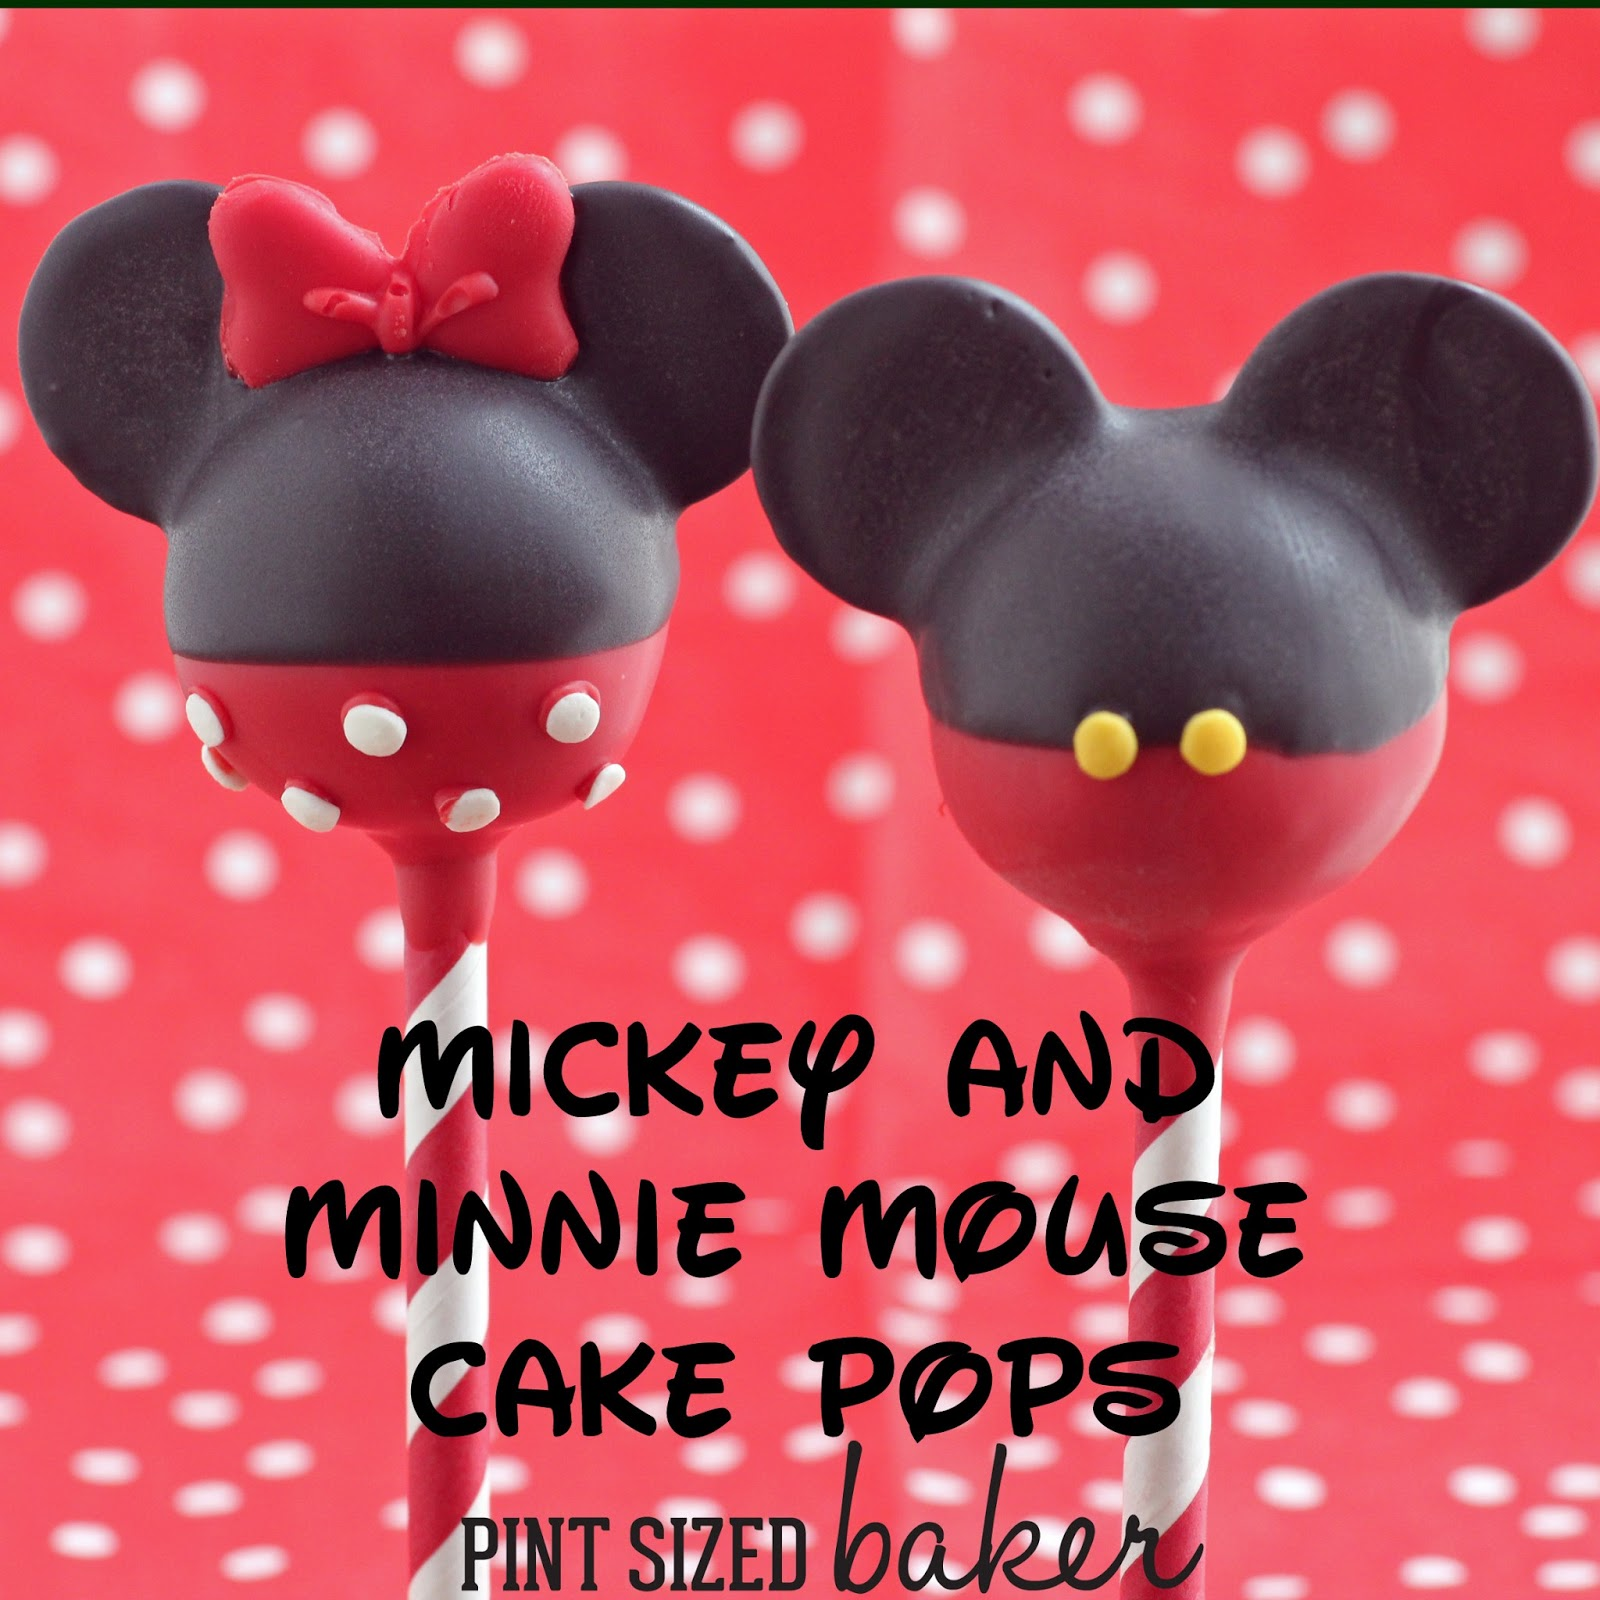 How To Make Minnie Mouse Cake Pops Recipe Cake Recipe